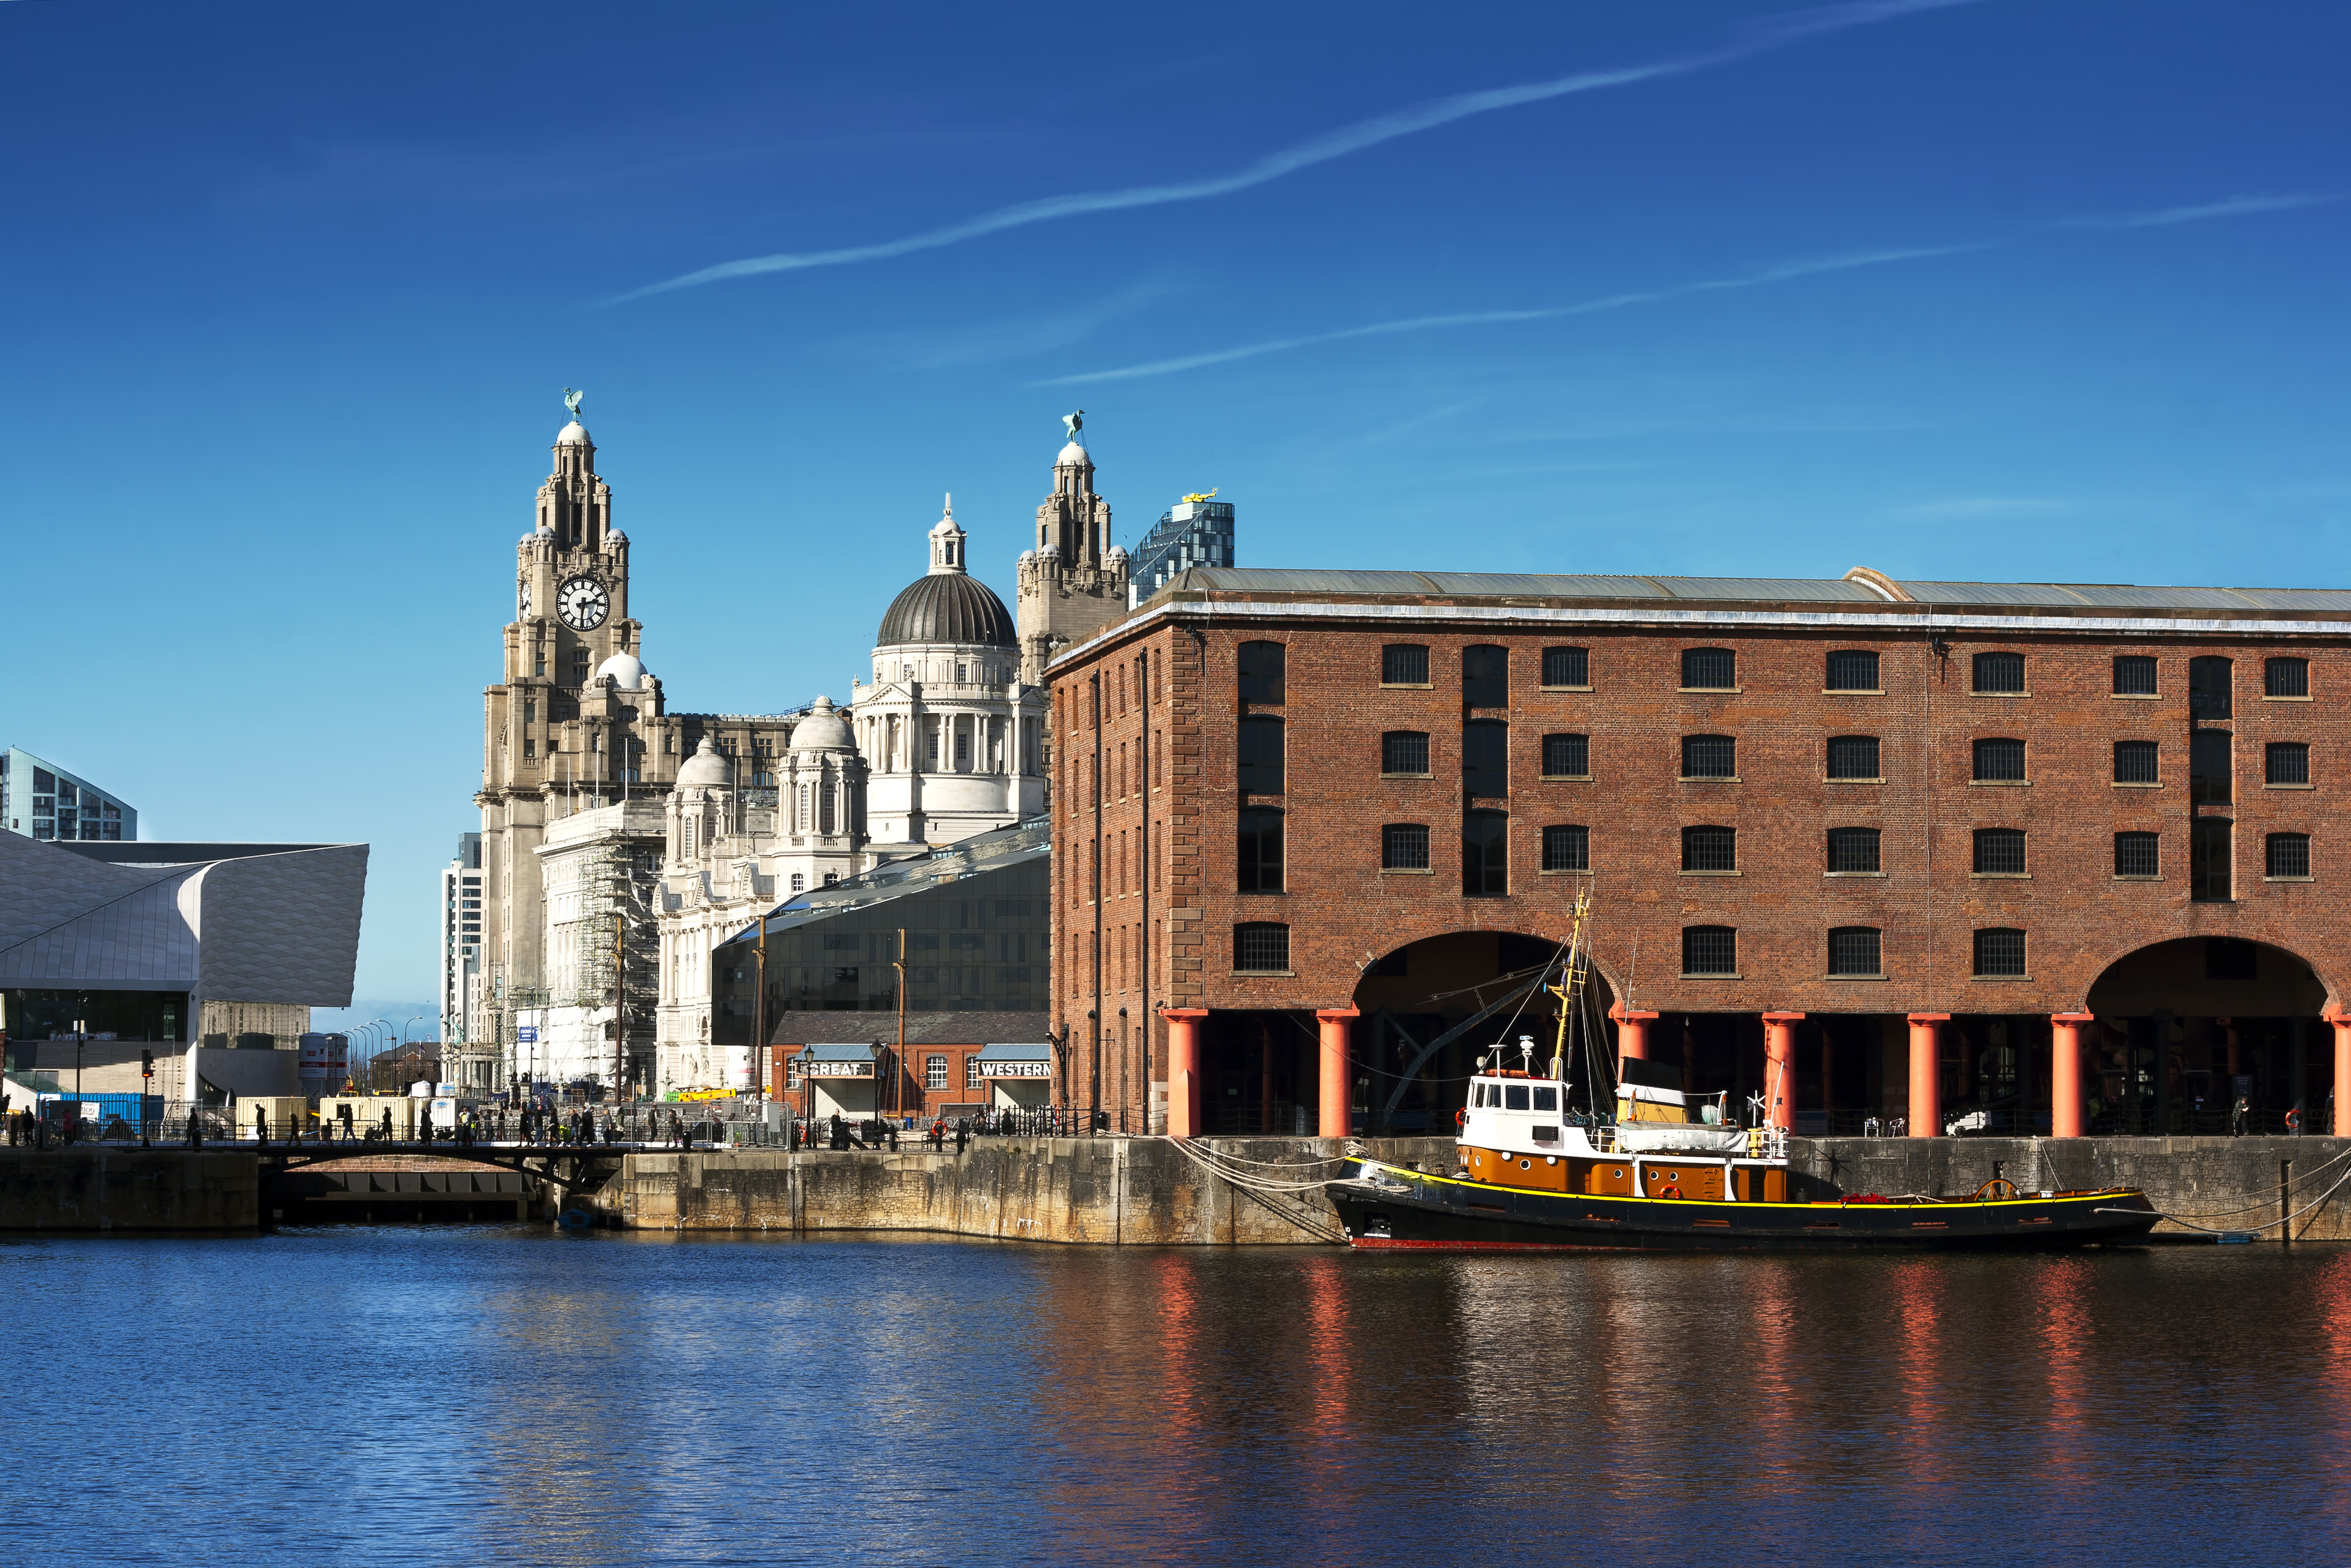 View of Tate Liverpool and waterfront